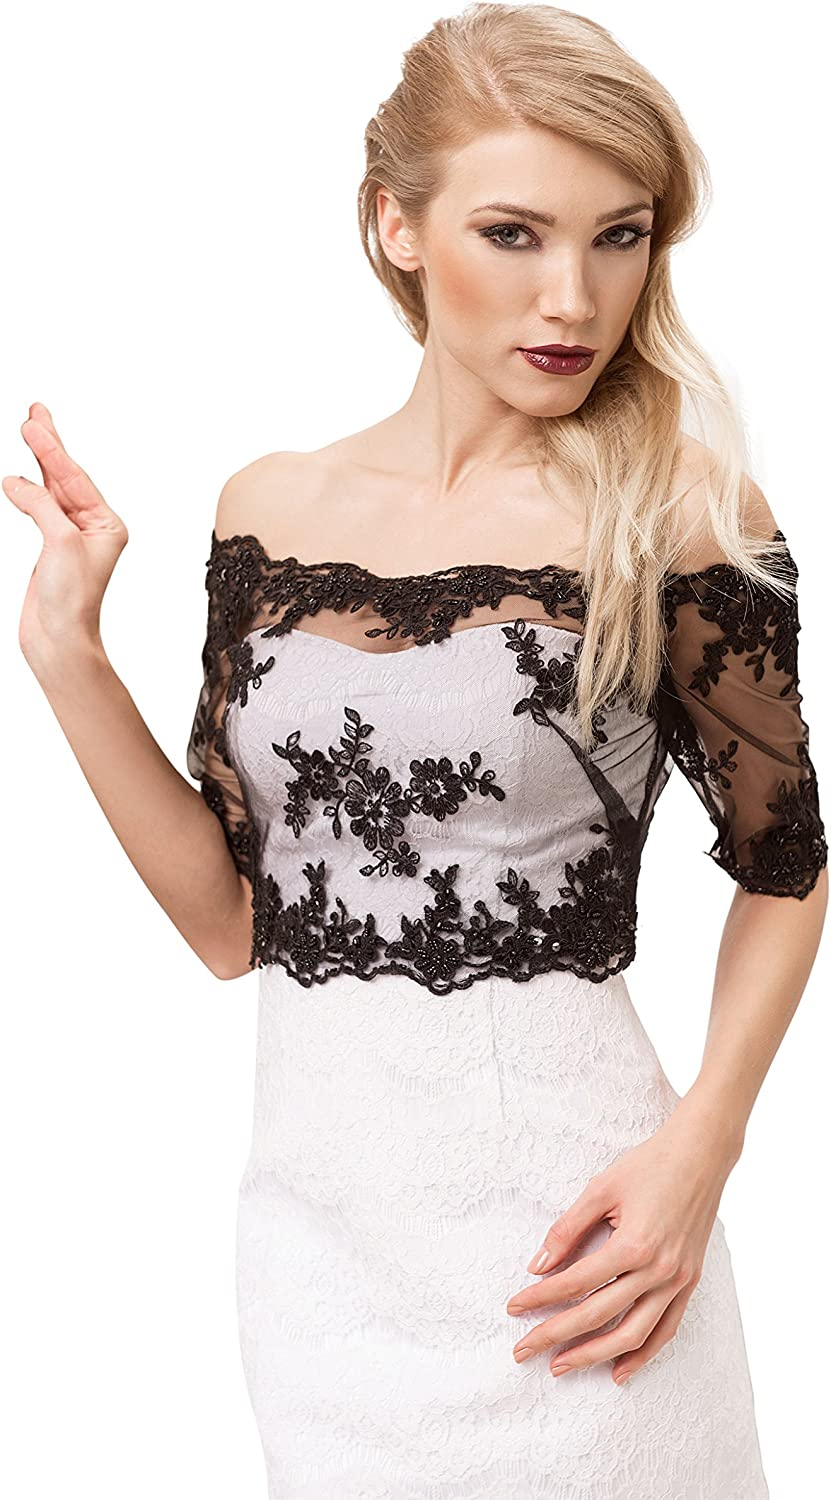 OssaFashion BridalWear Womens Evening Party Black Lace Corset Bolero Jacket Half Length Sleeves